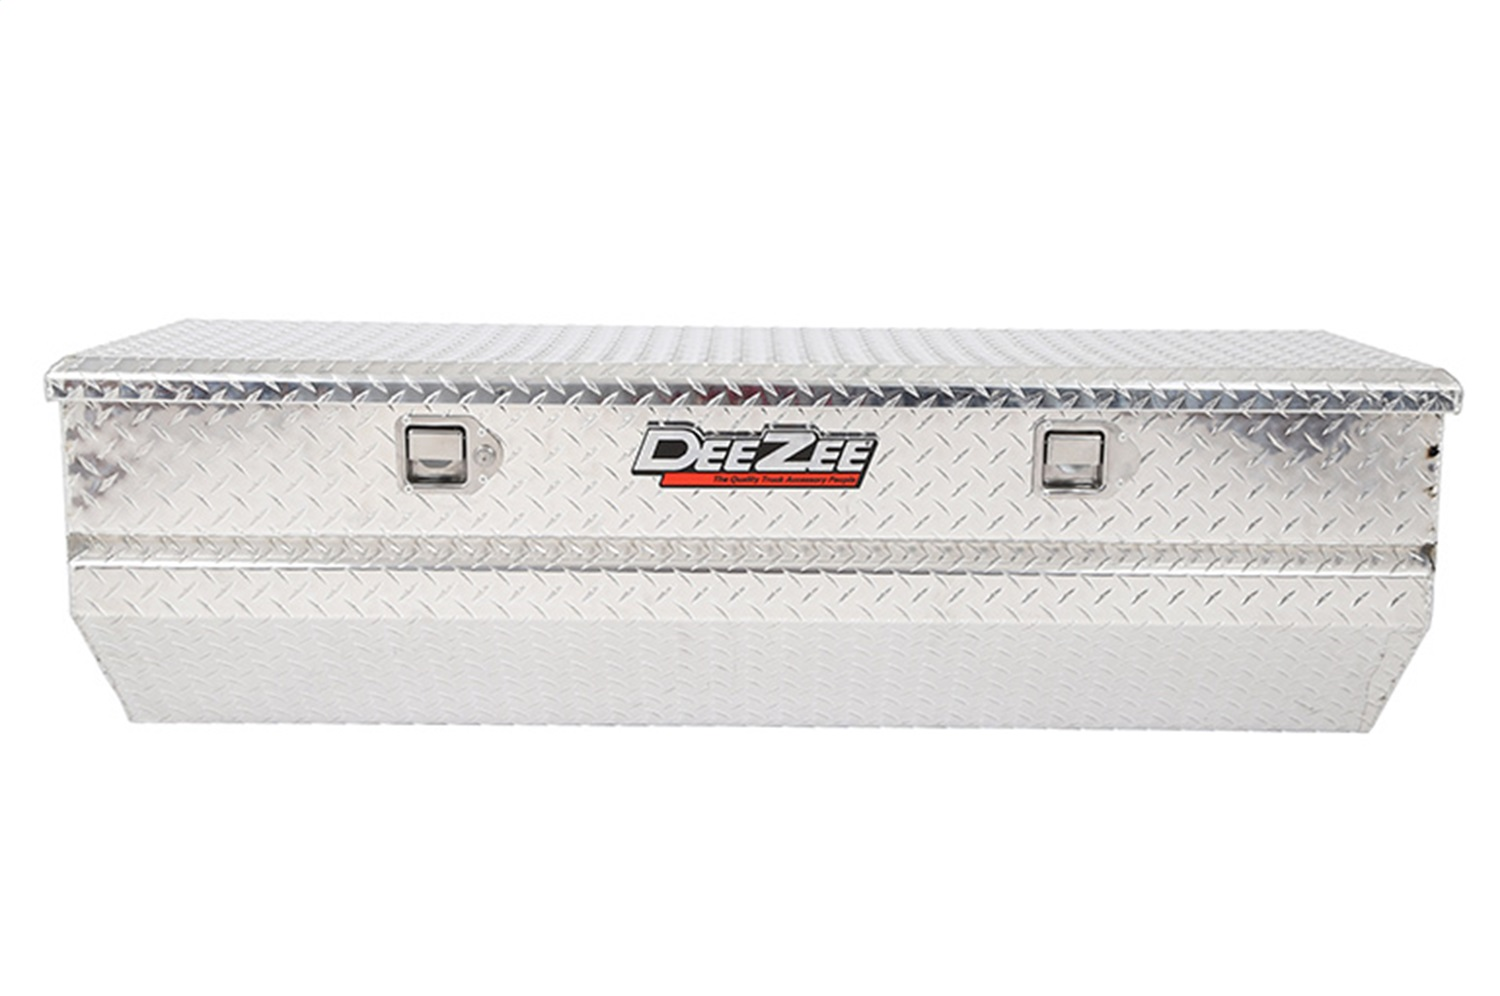 Dee Zee DZ8556F Red Label Utility Chest